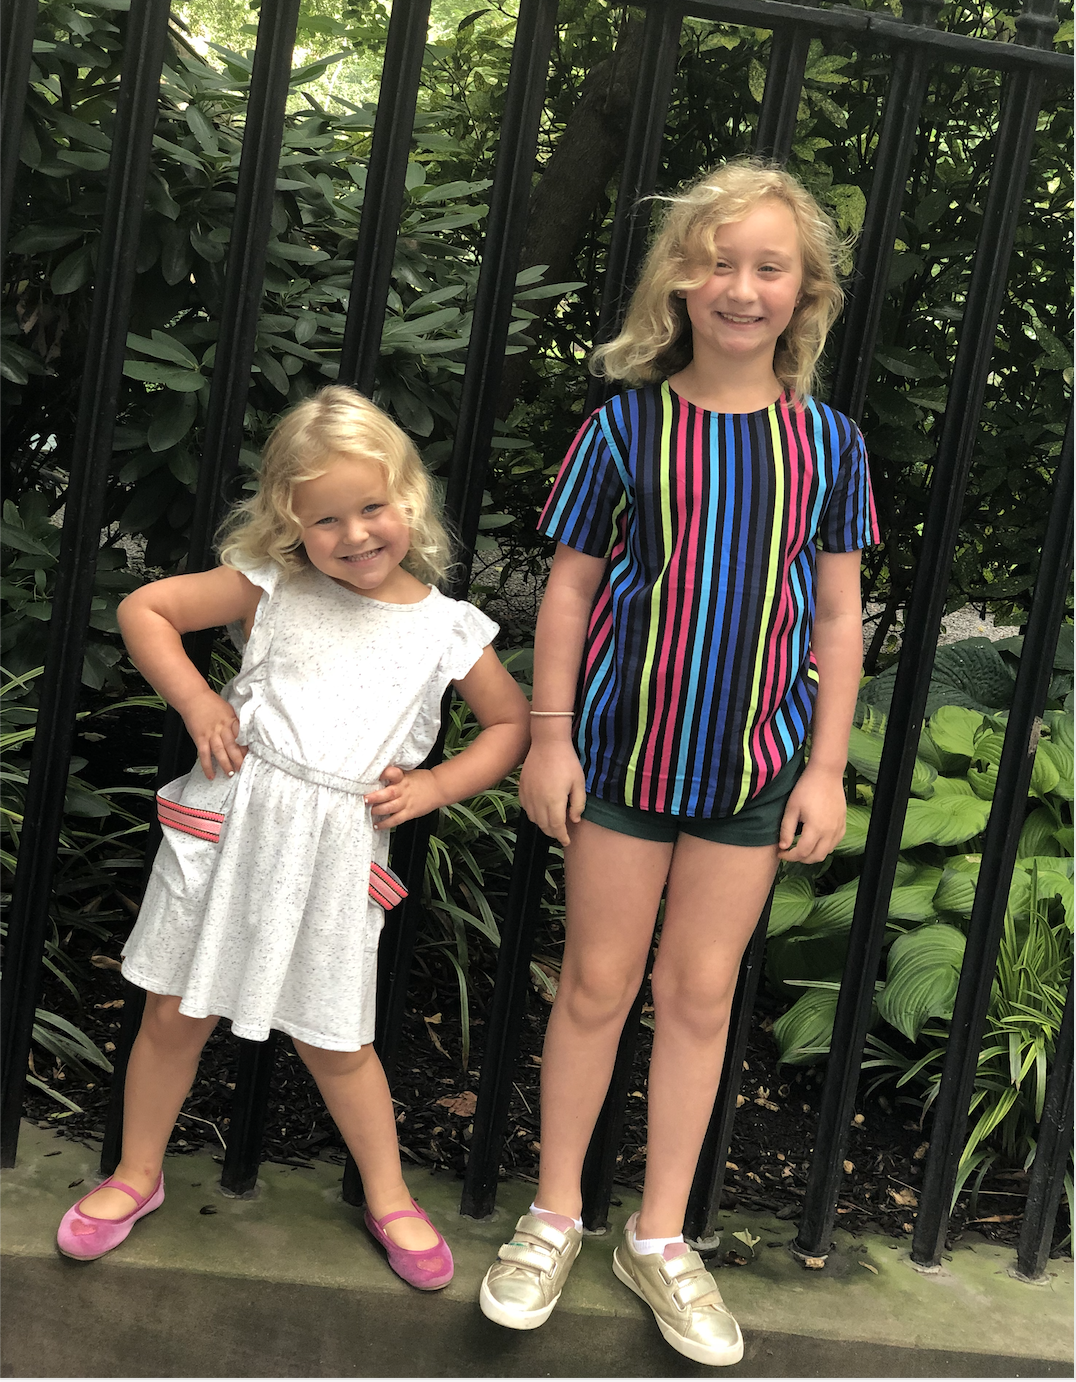 Goldie is wearing her favorite Cat & Jack dress, and Lex got this striped shirt at the Rockets of Awesome store opening event- she was so excited to wear it, even though the only bottoms she packed for our overnight trip to NYC were a pair of hunter green camp uniform shorts!